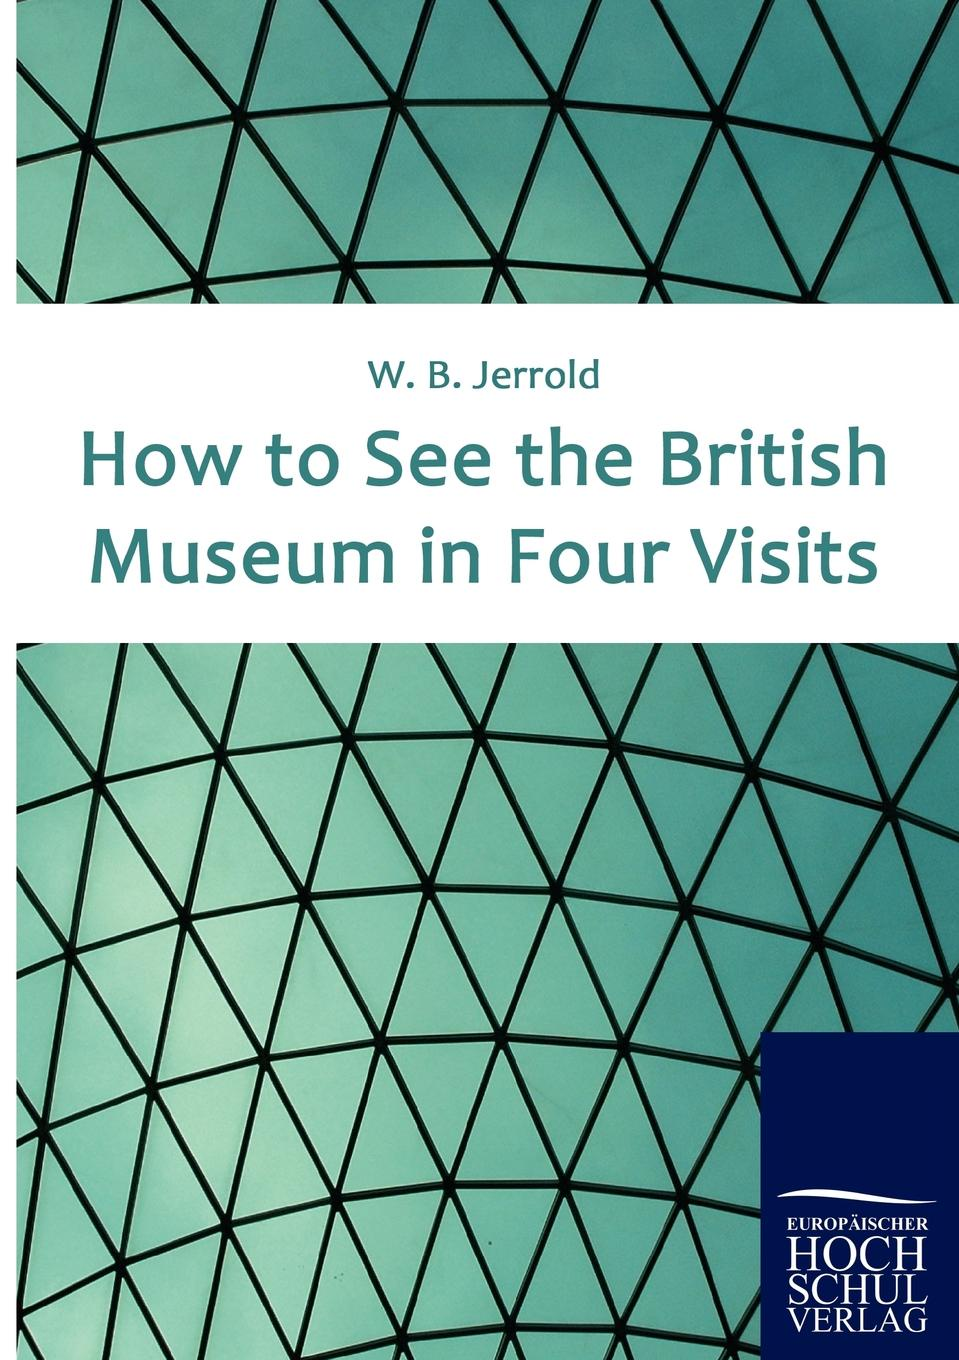 W B Jerrold How to See the British Museum in Four Visits